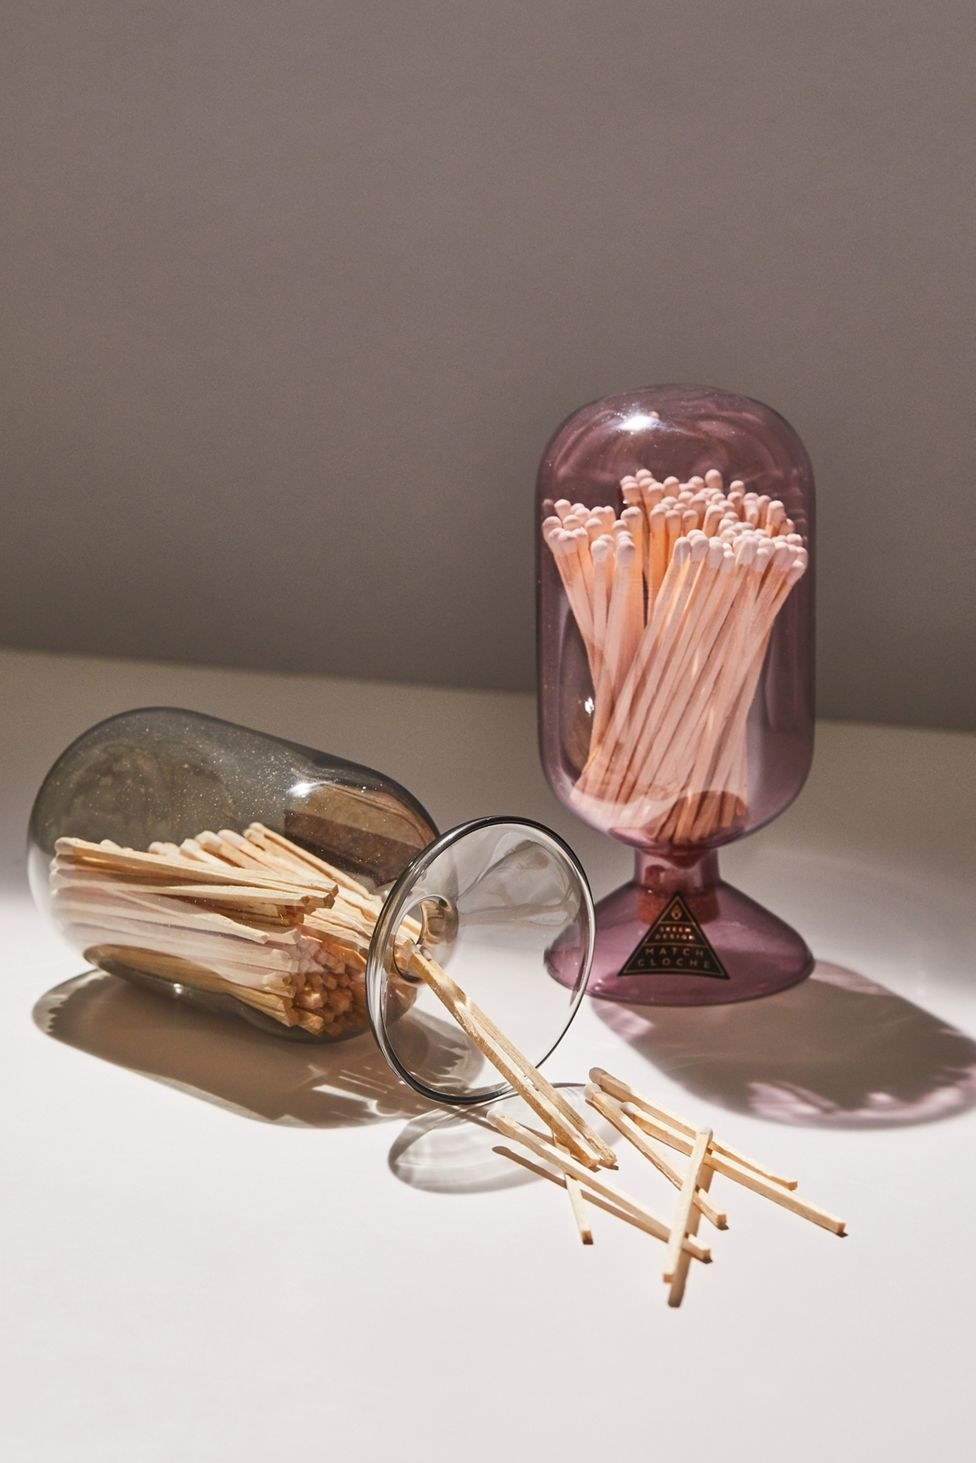 the glass cloches in black and purple with matches inside